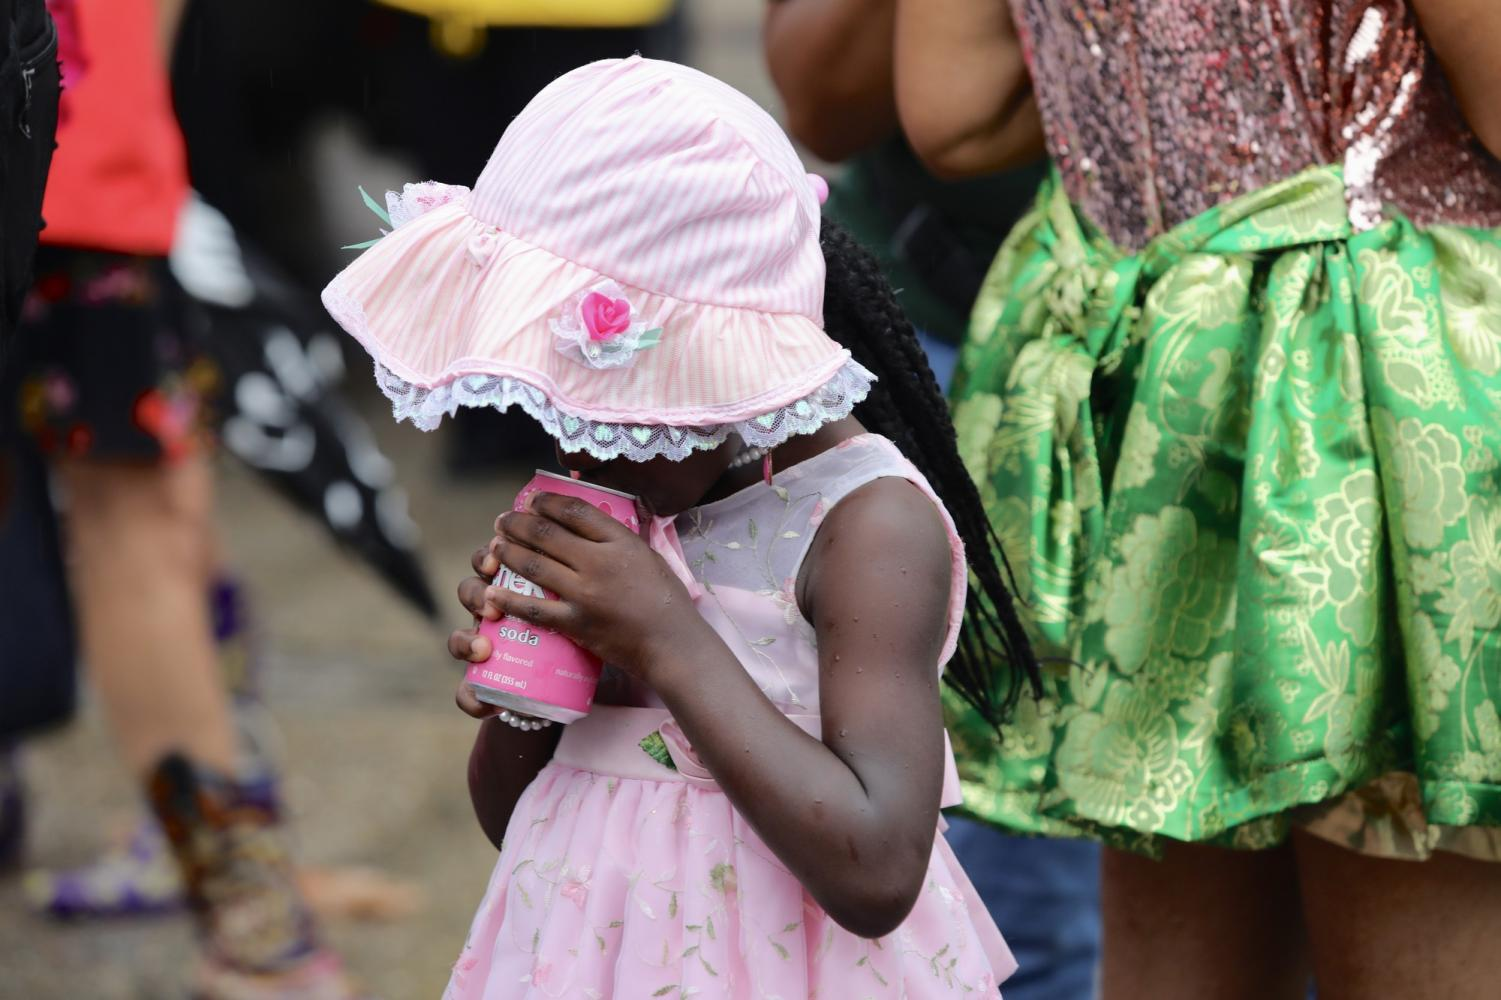 A baby doll cools down with a drink during Art Neville's second line procession on July 30, 2019. Photo credit: Andres Fuentes